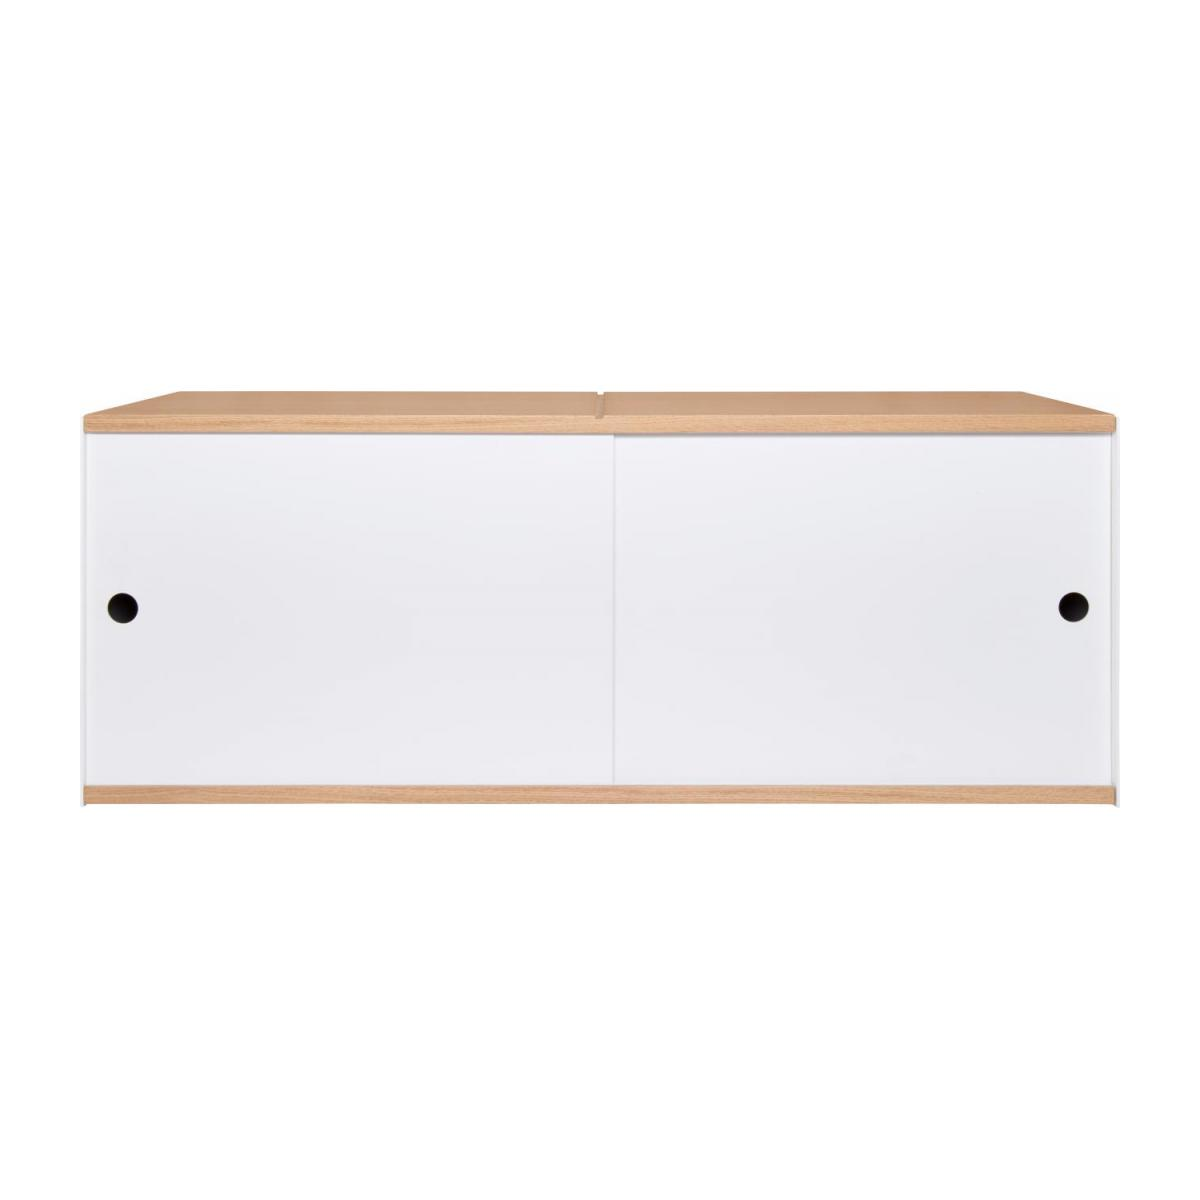 White and oak big closed modular storage rack - Design by Kasch Kasch n°3